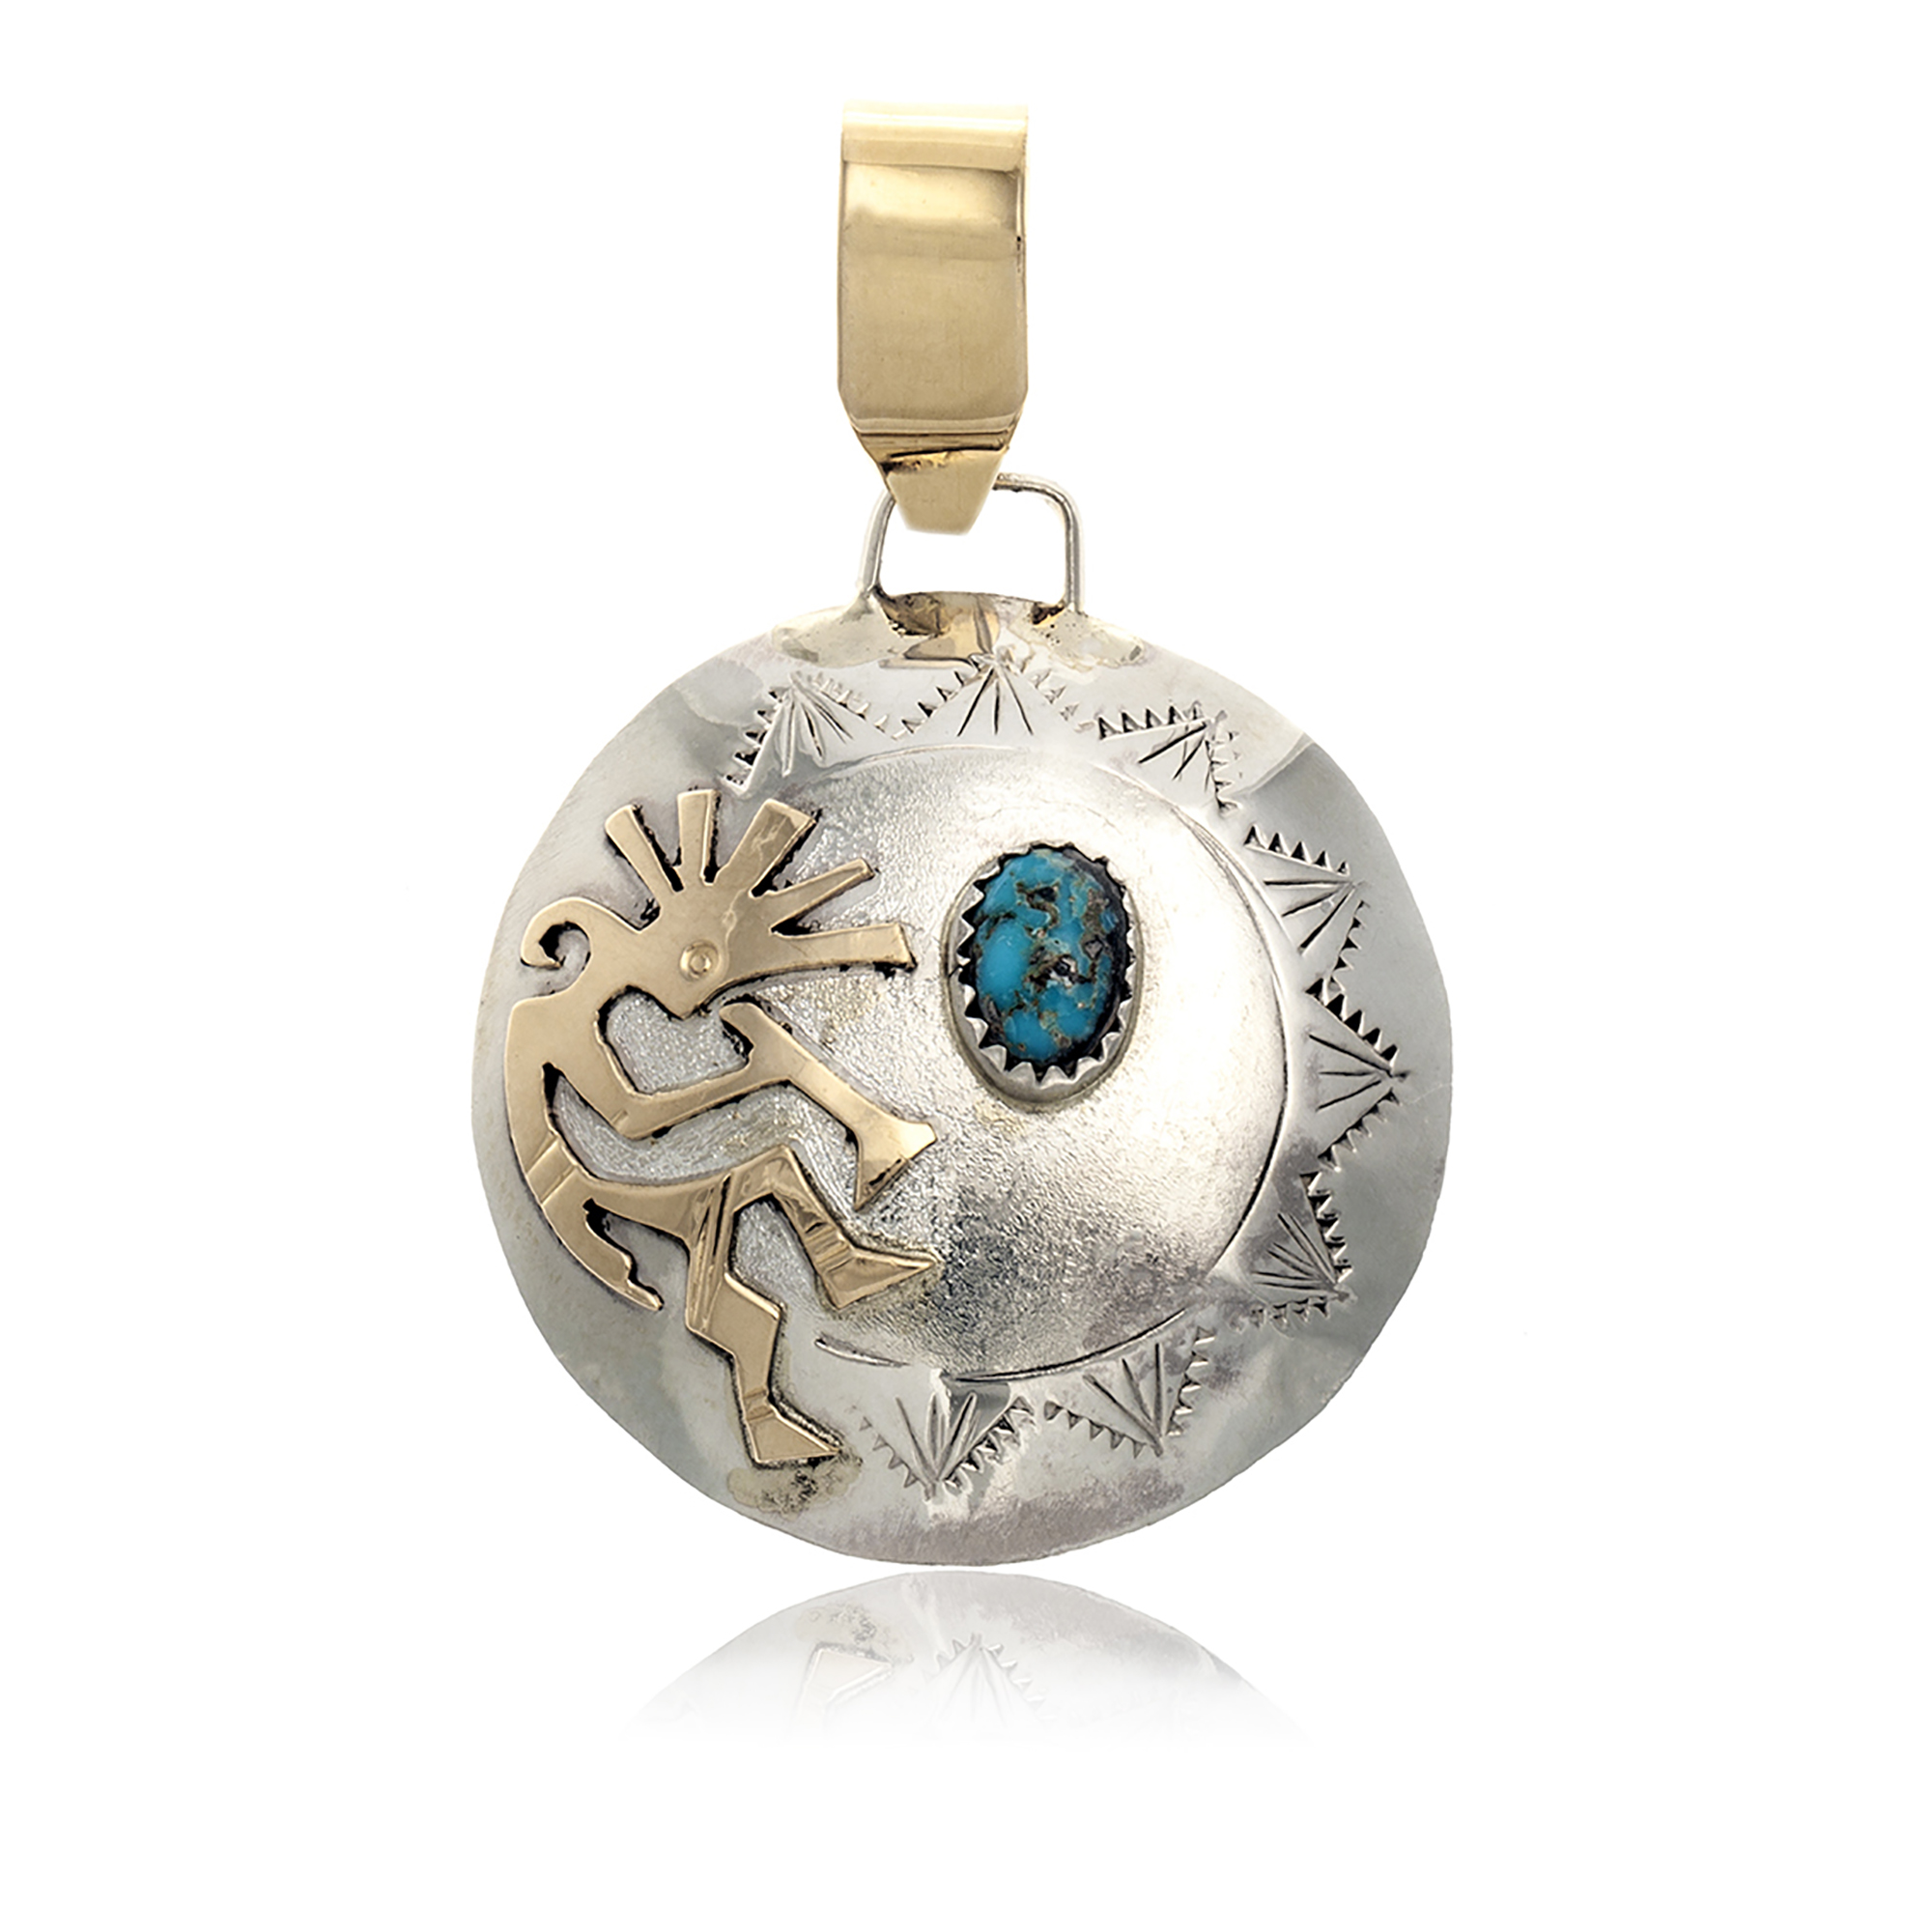 Kokopelli 12kt Gold Filled and .925 Sterling Silver Certified Authentic Handmade Navajo Native American Natural Turquoise Pendant 17042-8 Pendants NB160107223638 17042-8 (by LomaSiiva)